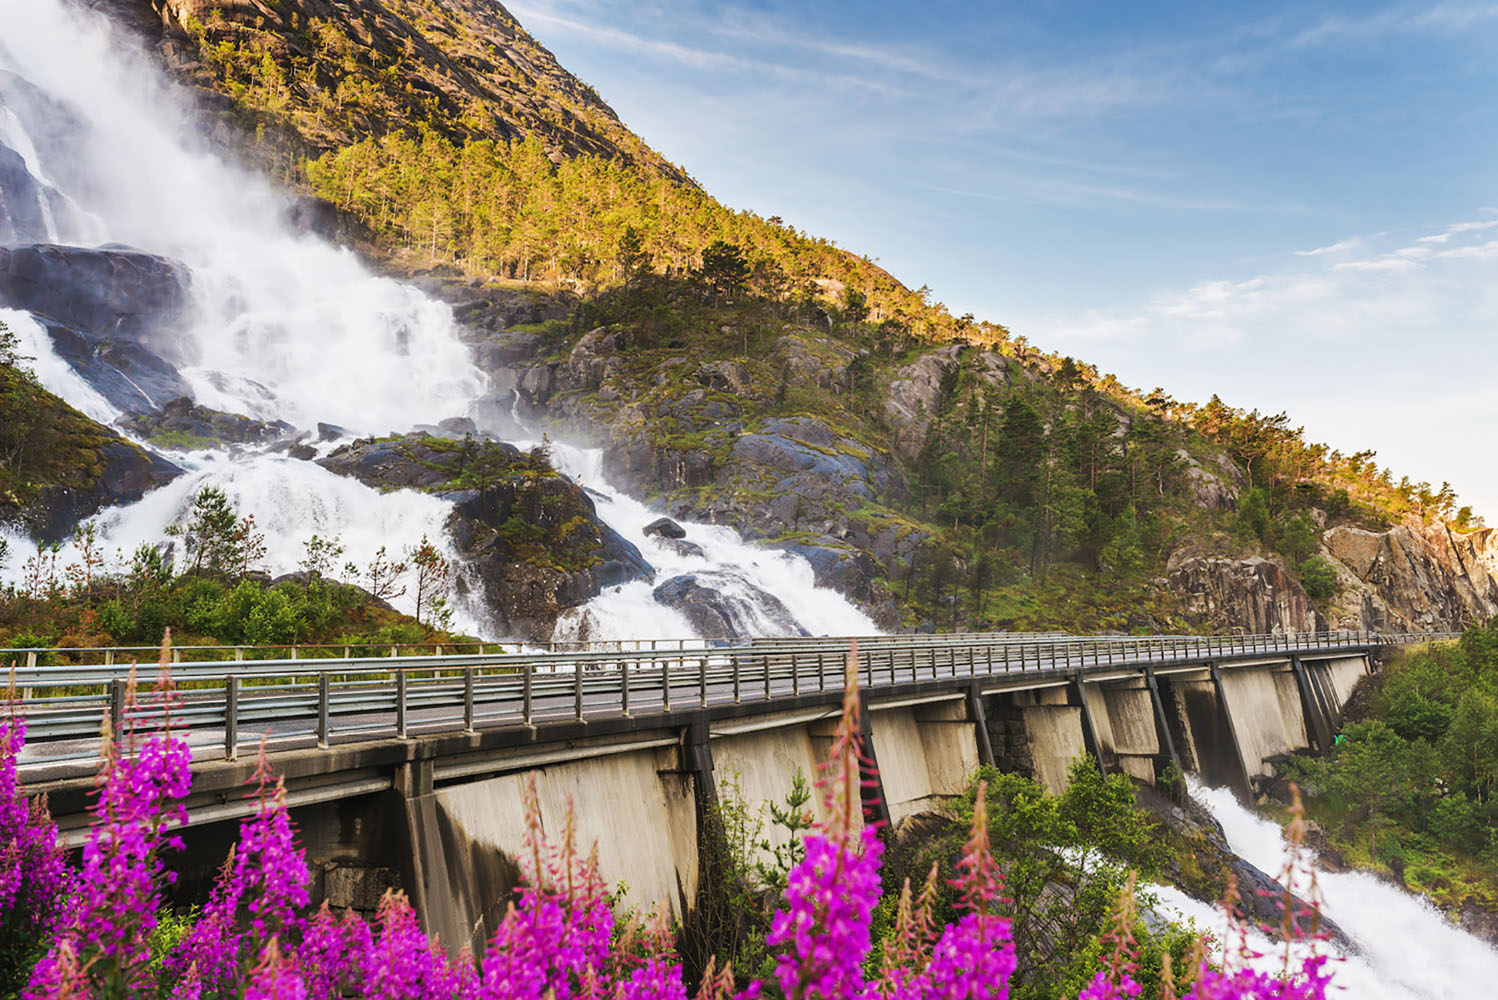 The waterfalls, cliffs, and glaciers of the Norwegian Fjords